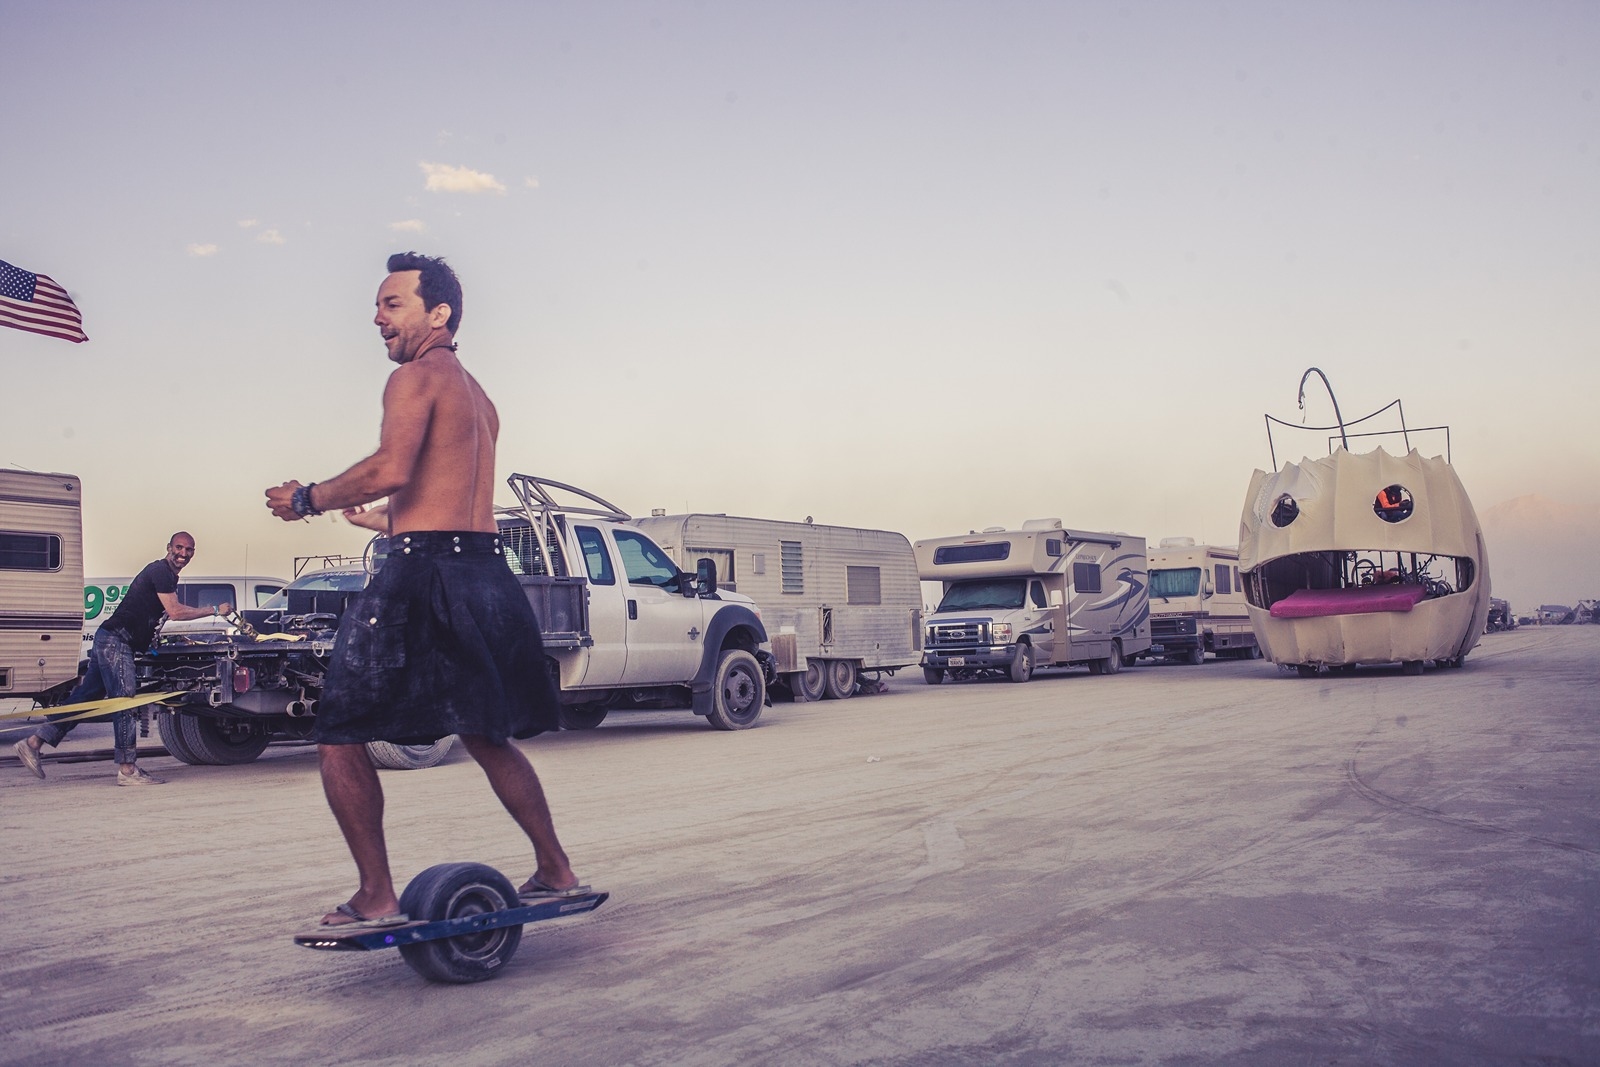 Burning Man - One wheel skateboard